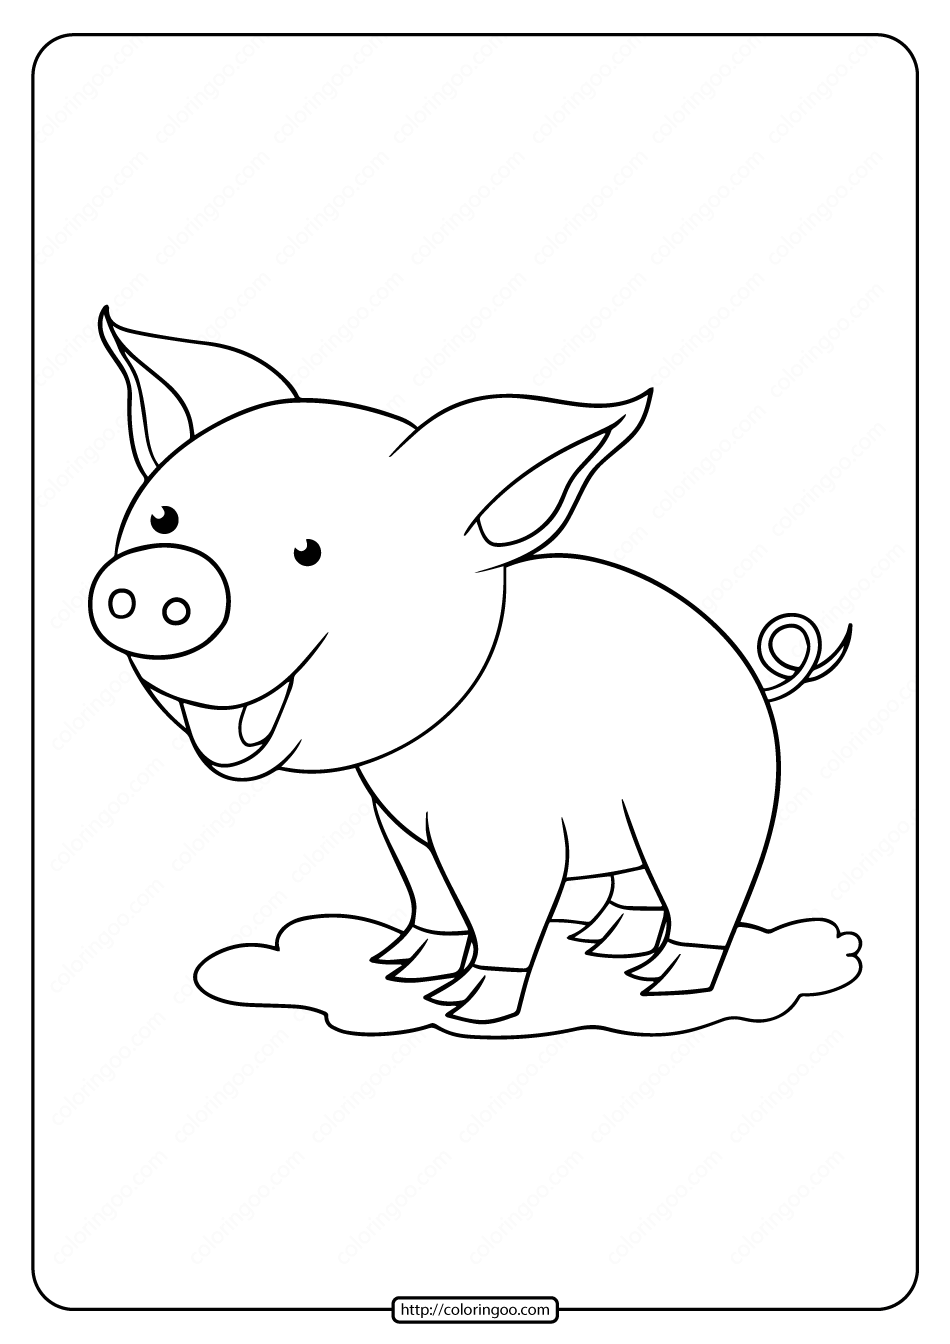 coloring pig for kids three little pigs coloring pages the three little pigs story pig for coloring kids